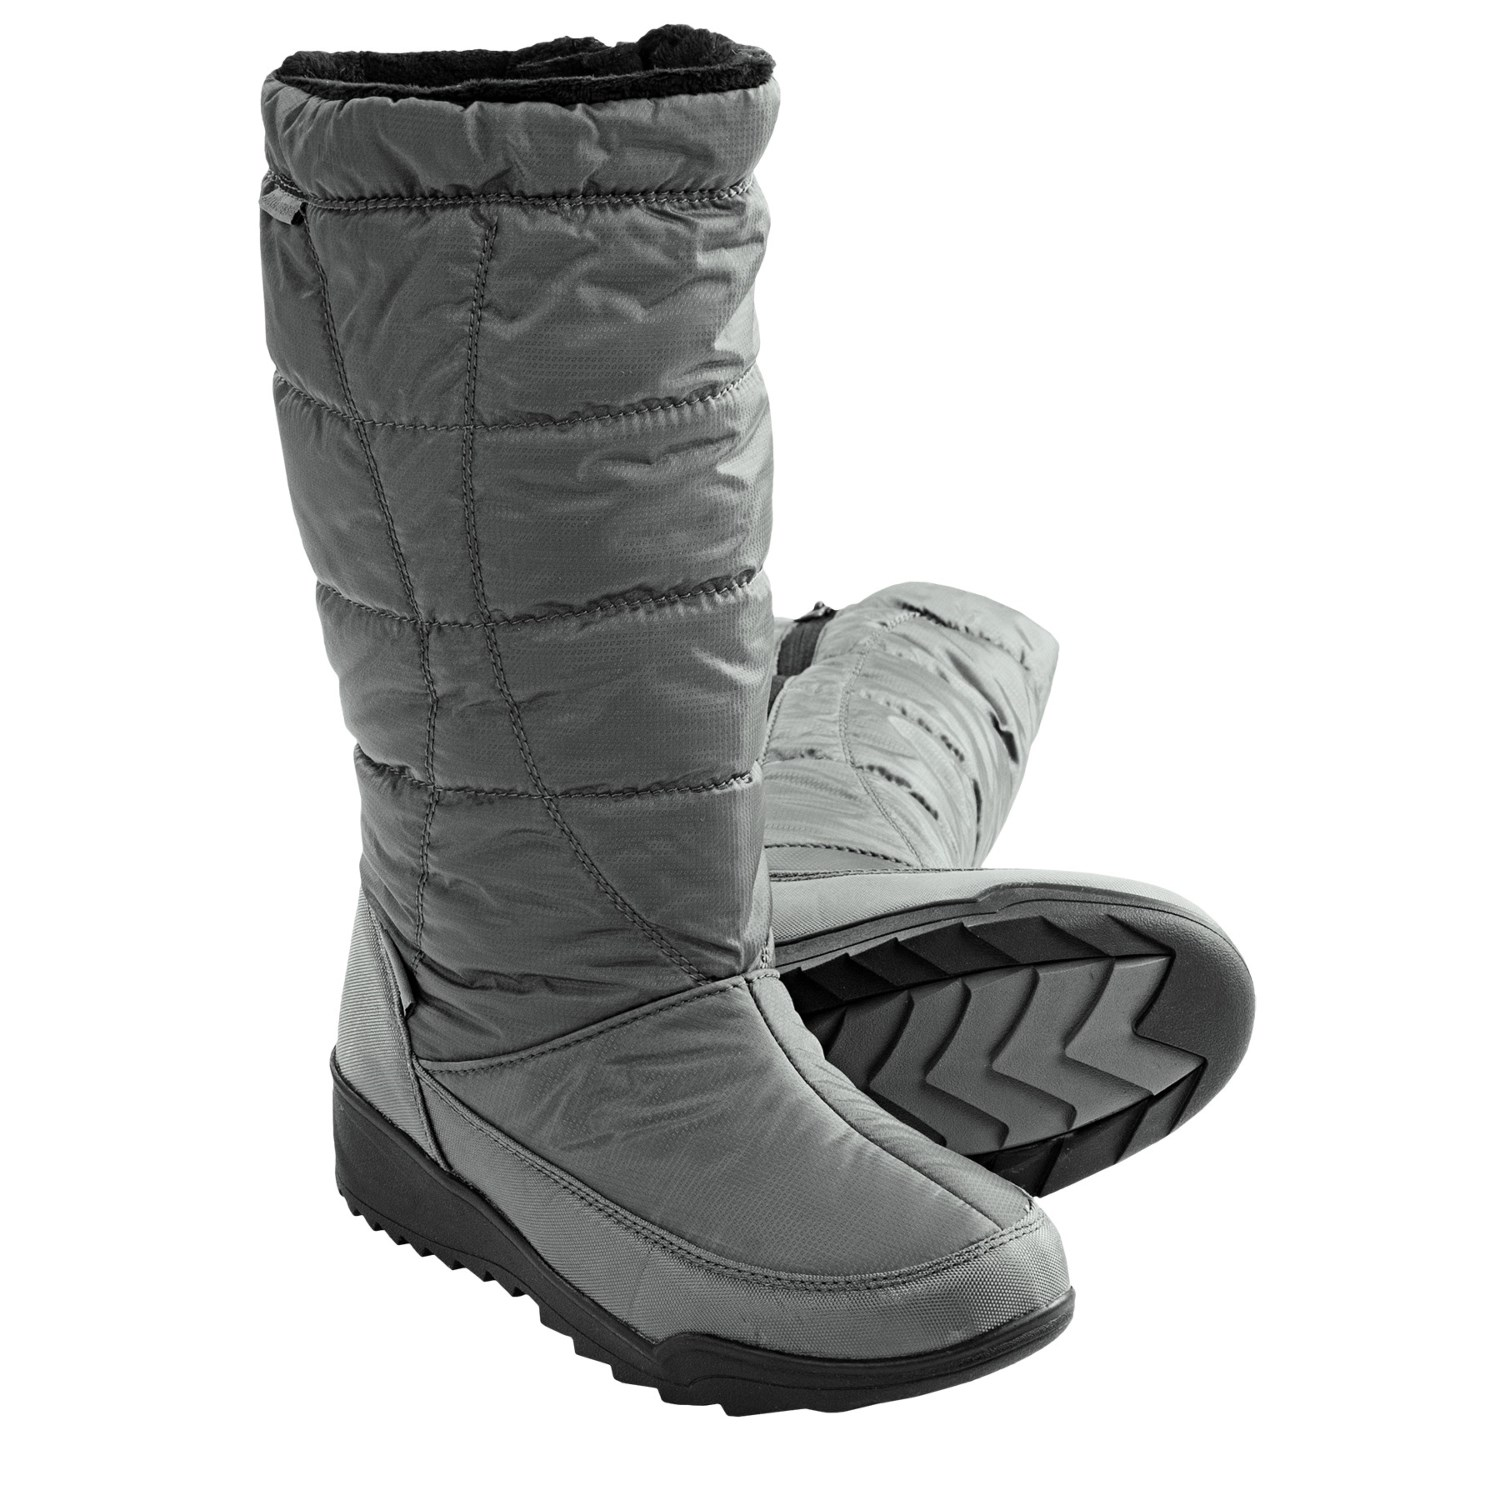 Kamik Women;s Snow Boots Sale | Homewood Mountain Ski Resort